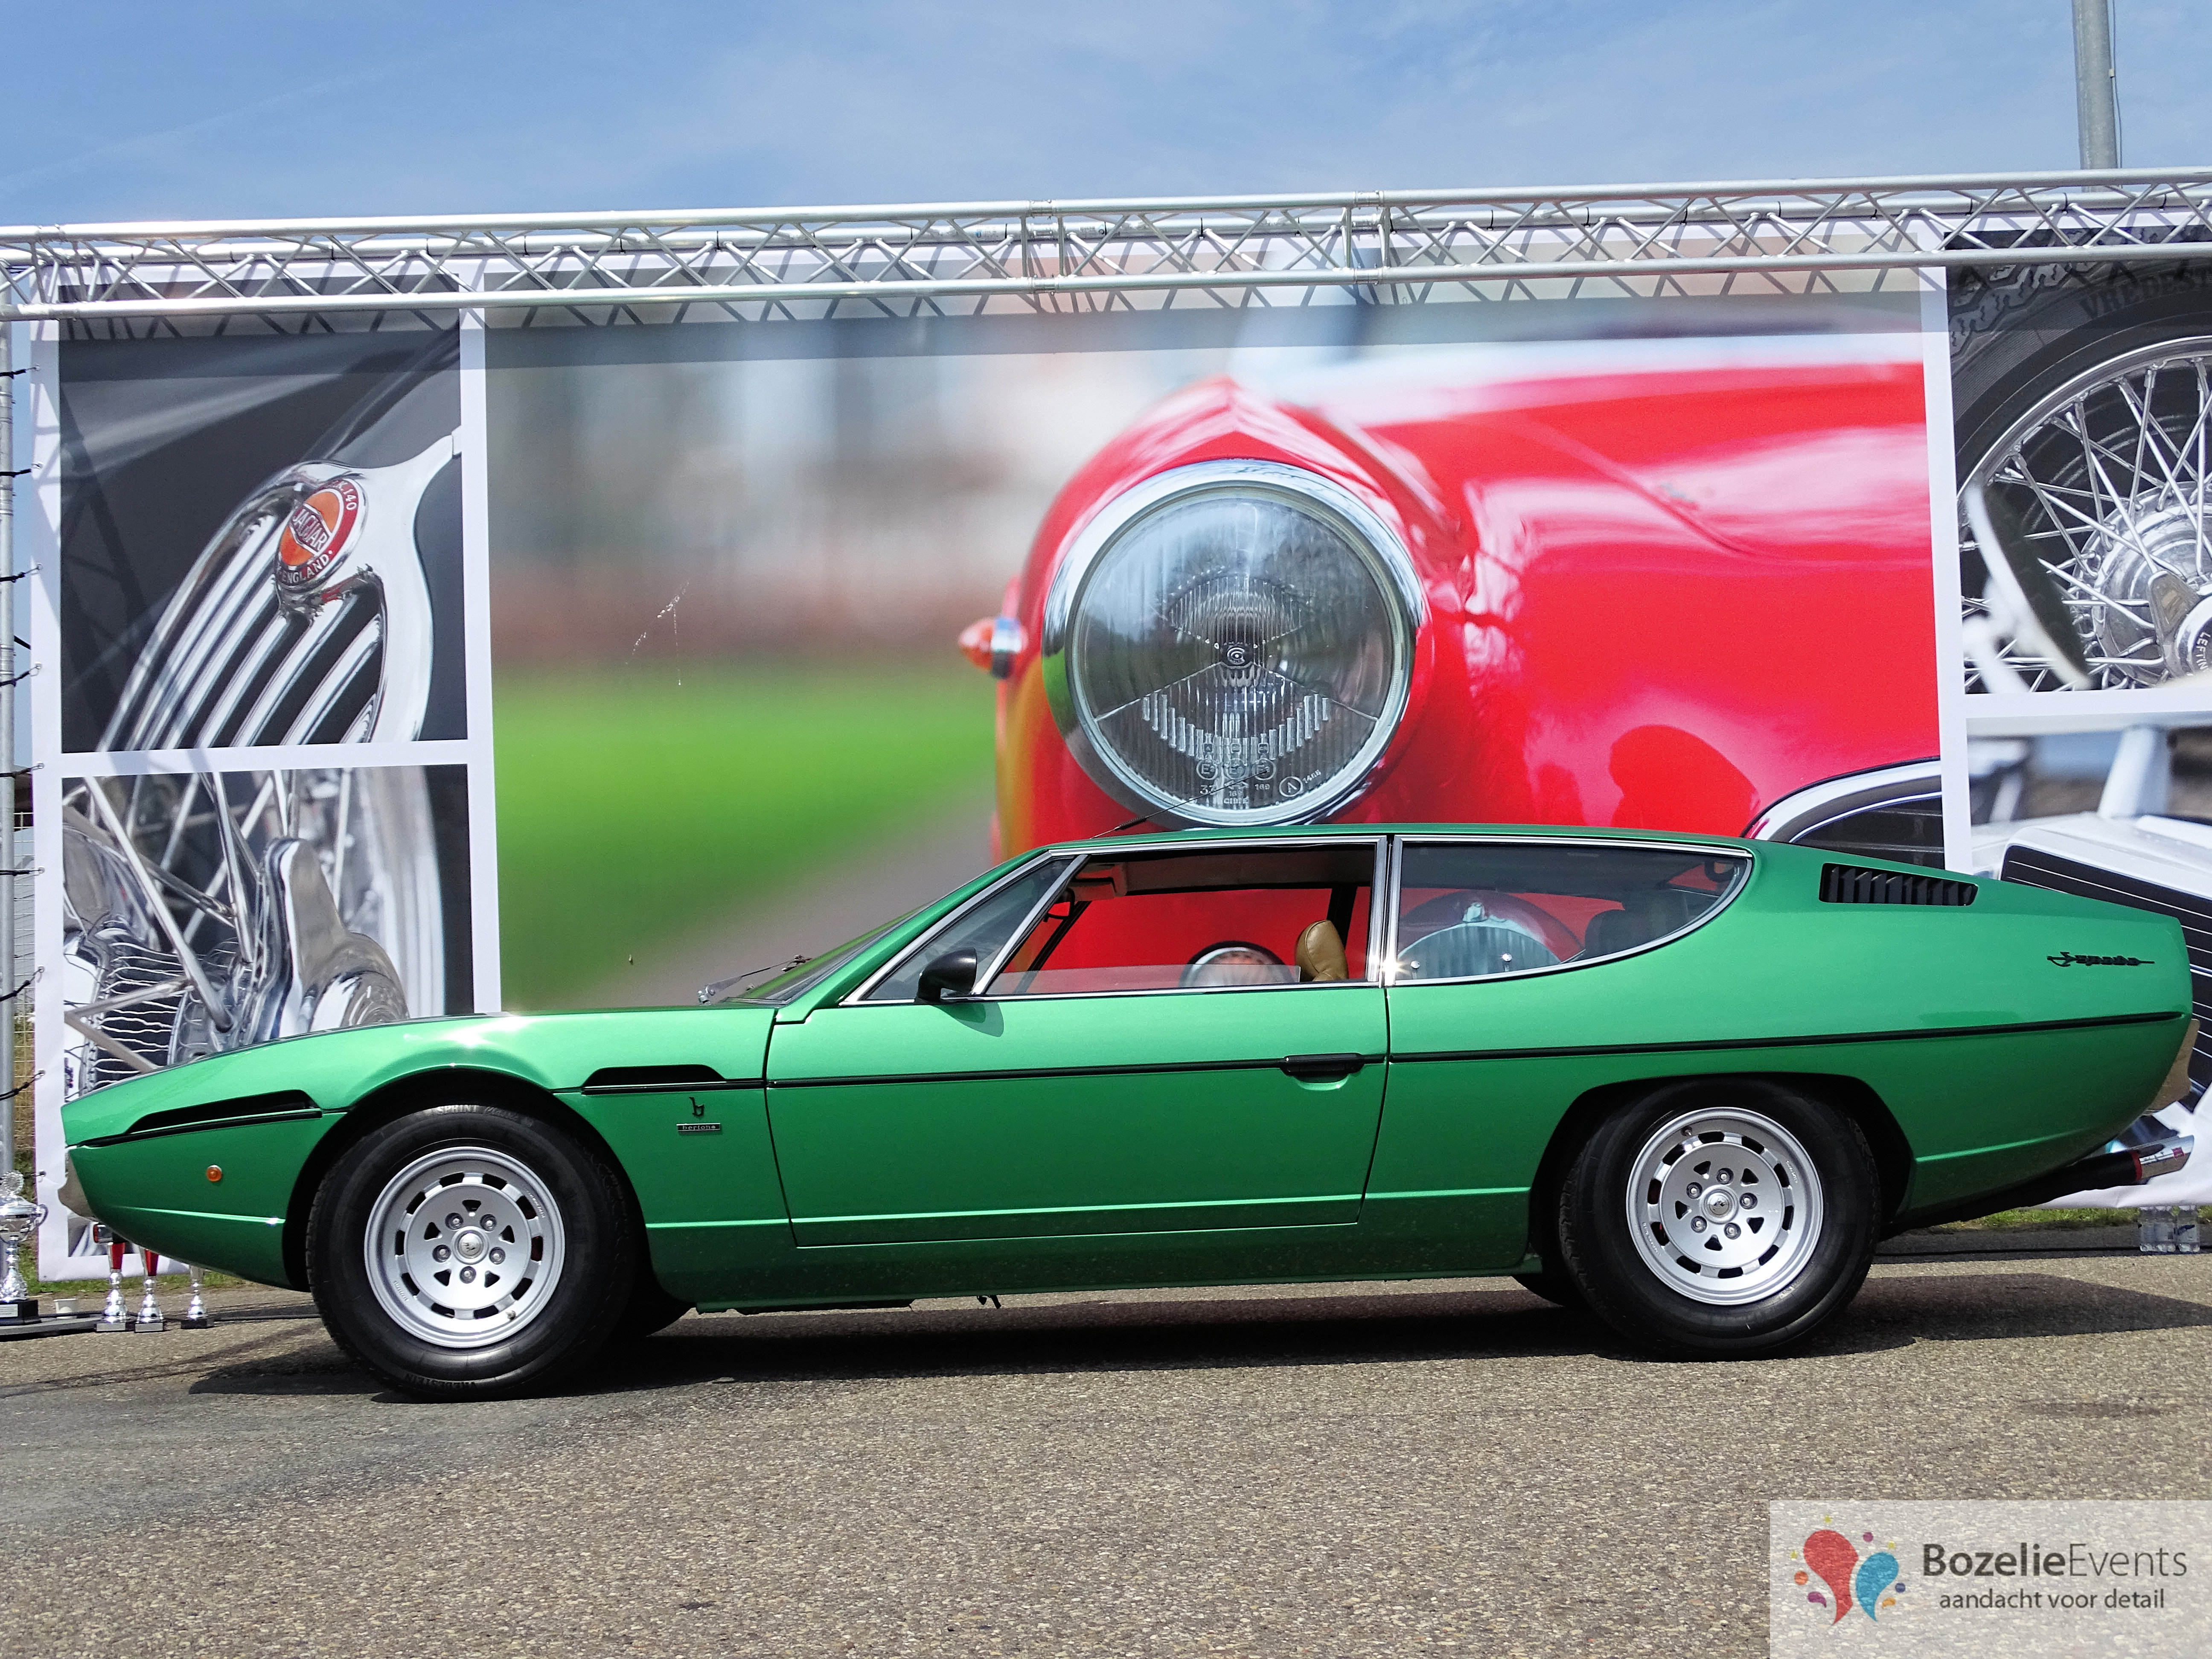 Espada Series 3 presented at Zandvoort track